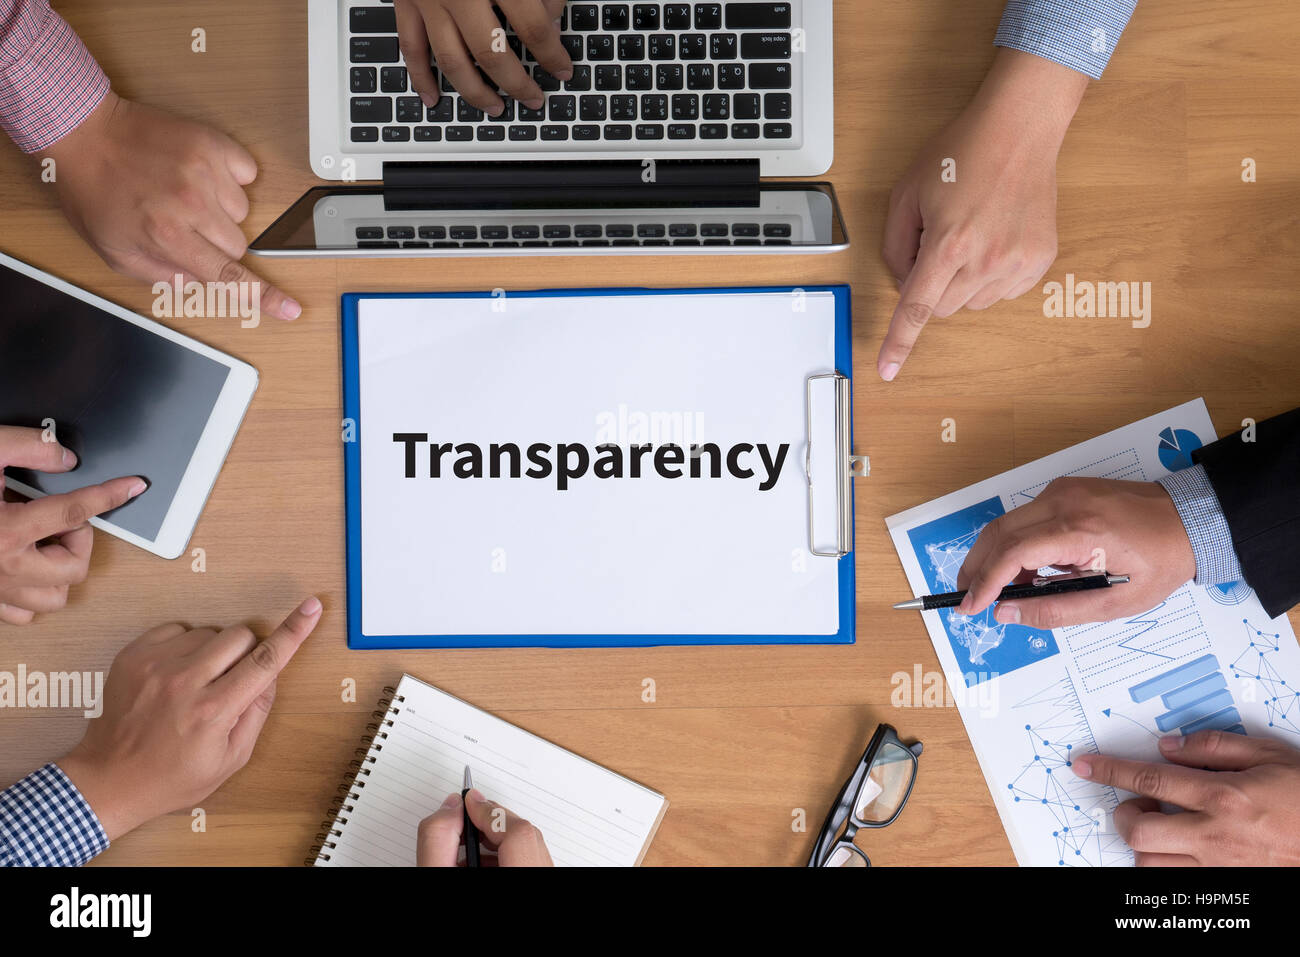 Transparency - Stock Image